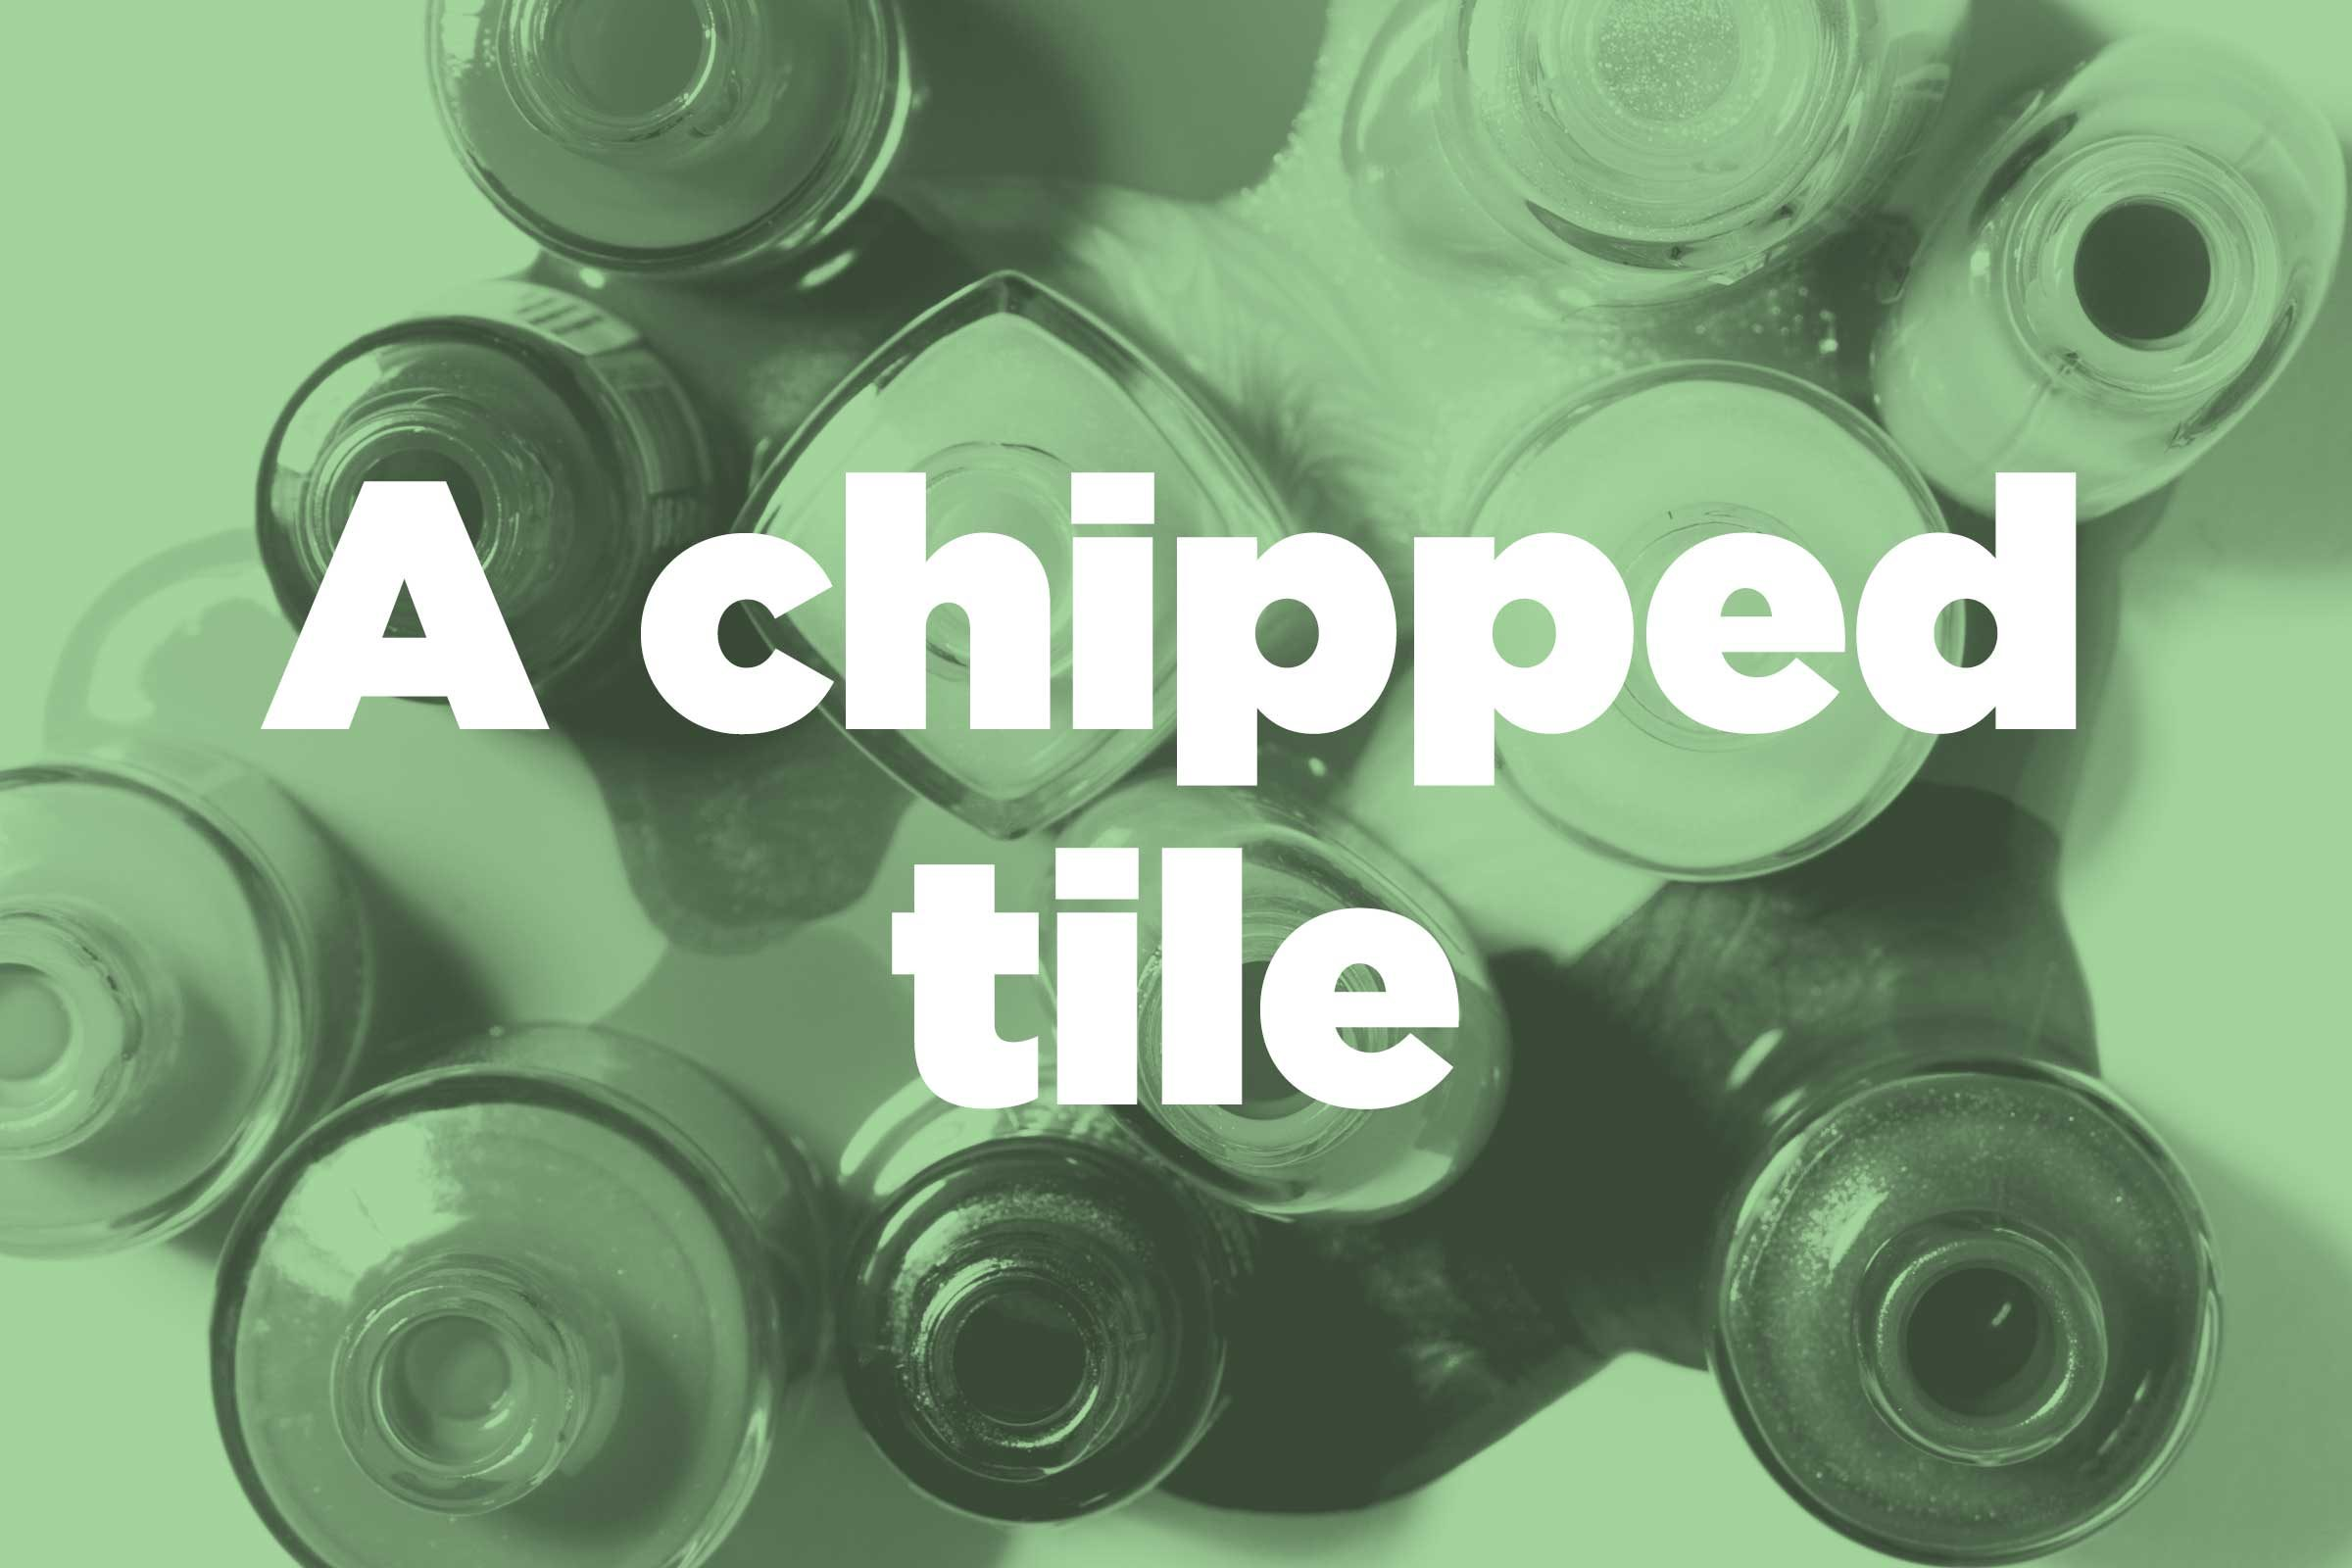 Hide a chipped tile